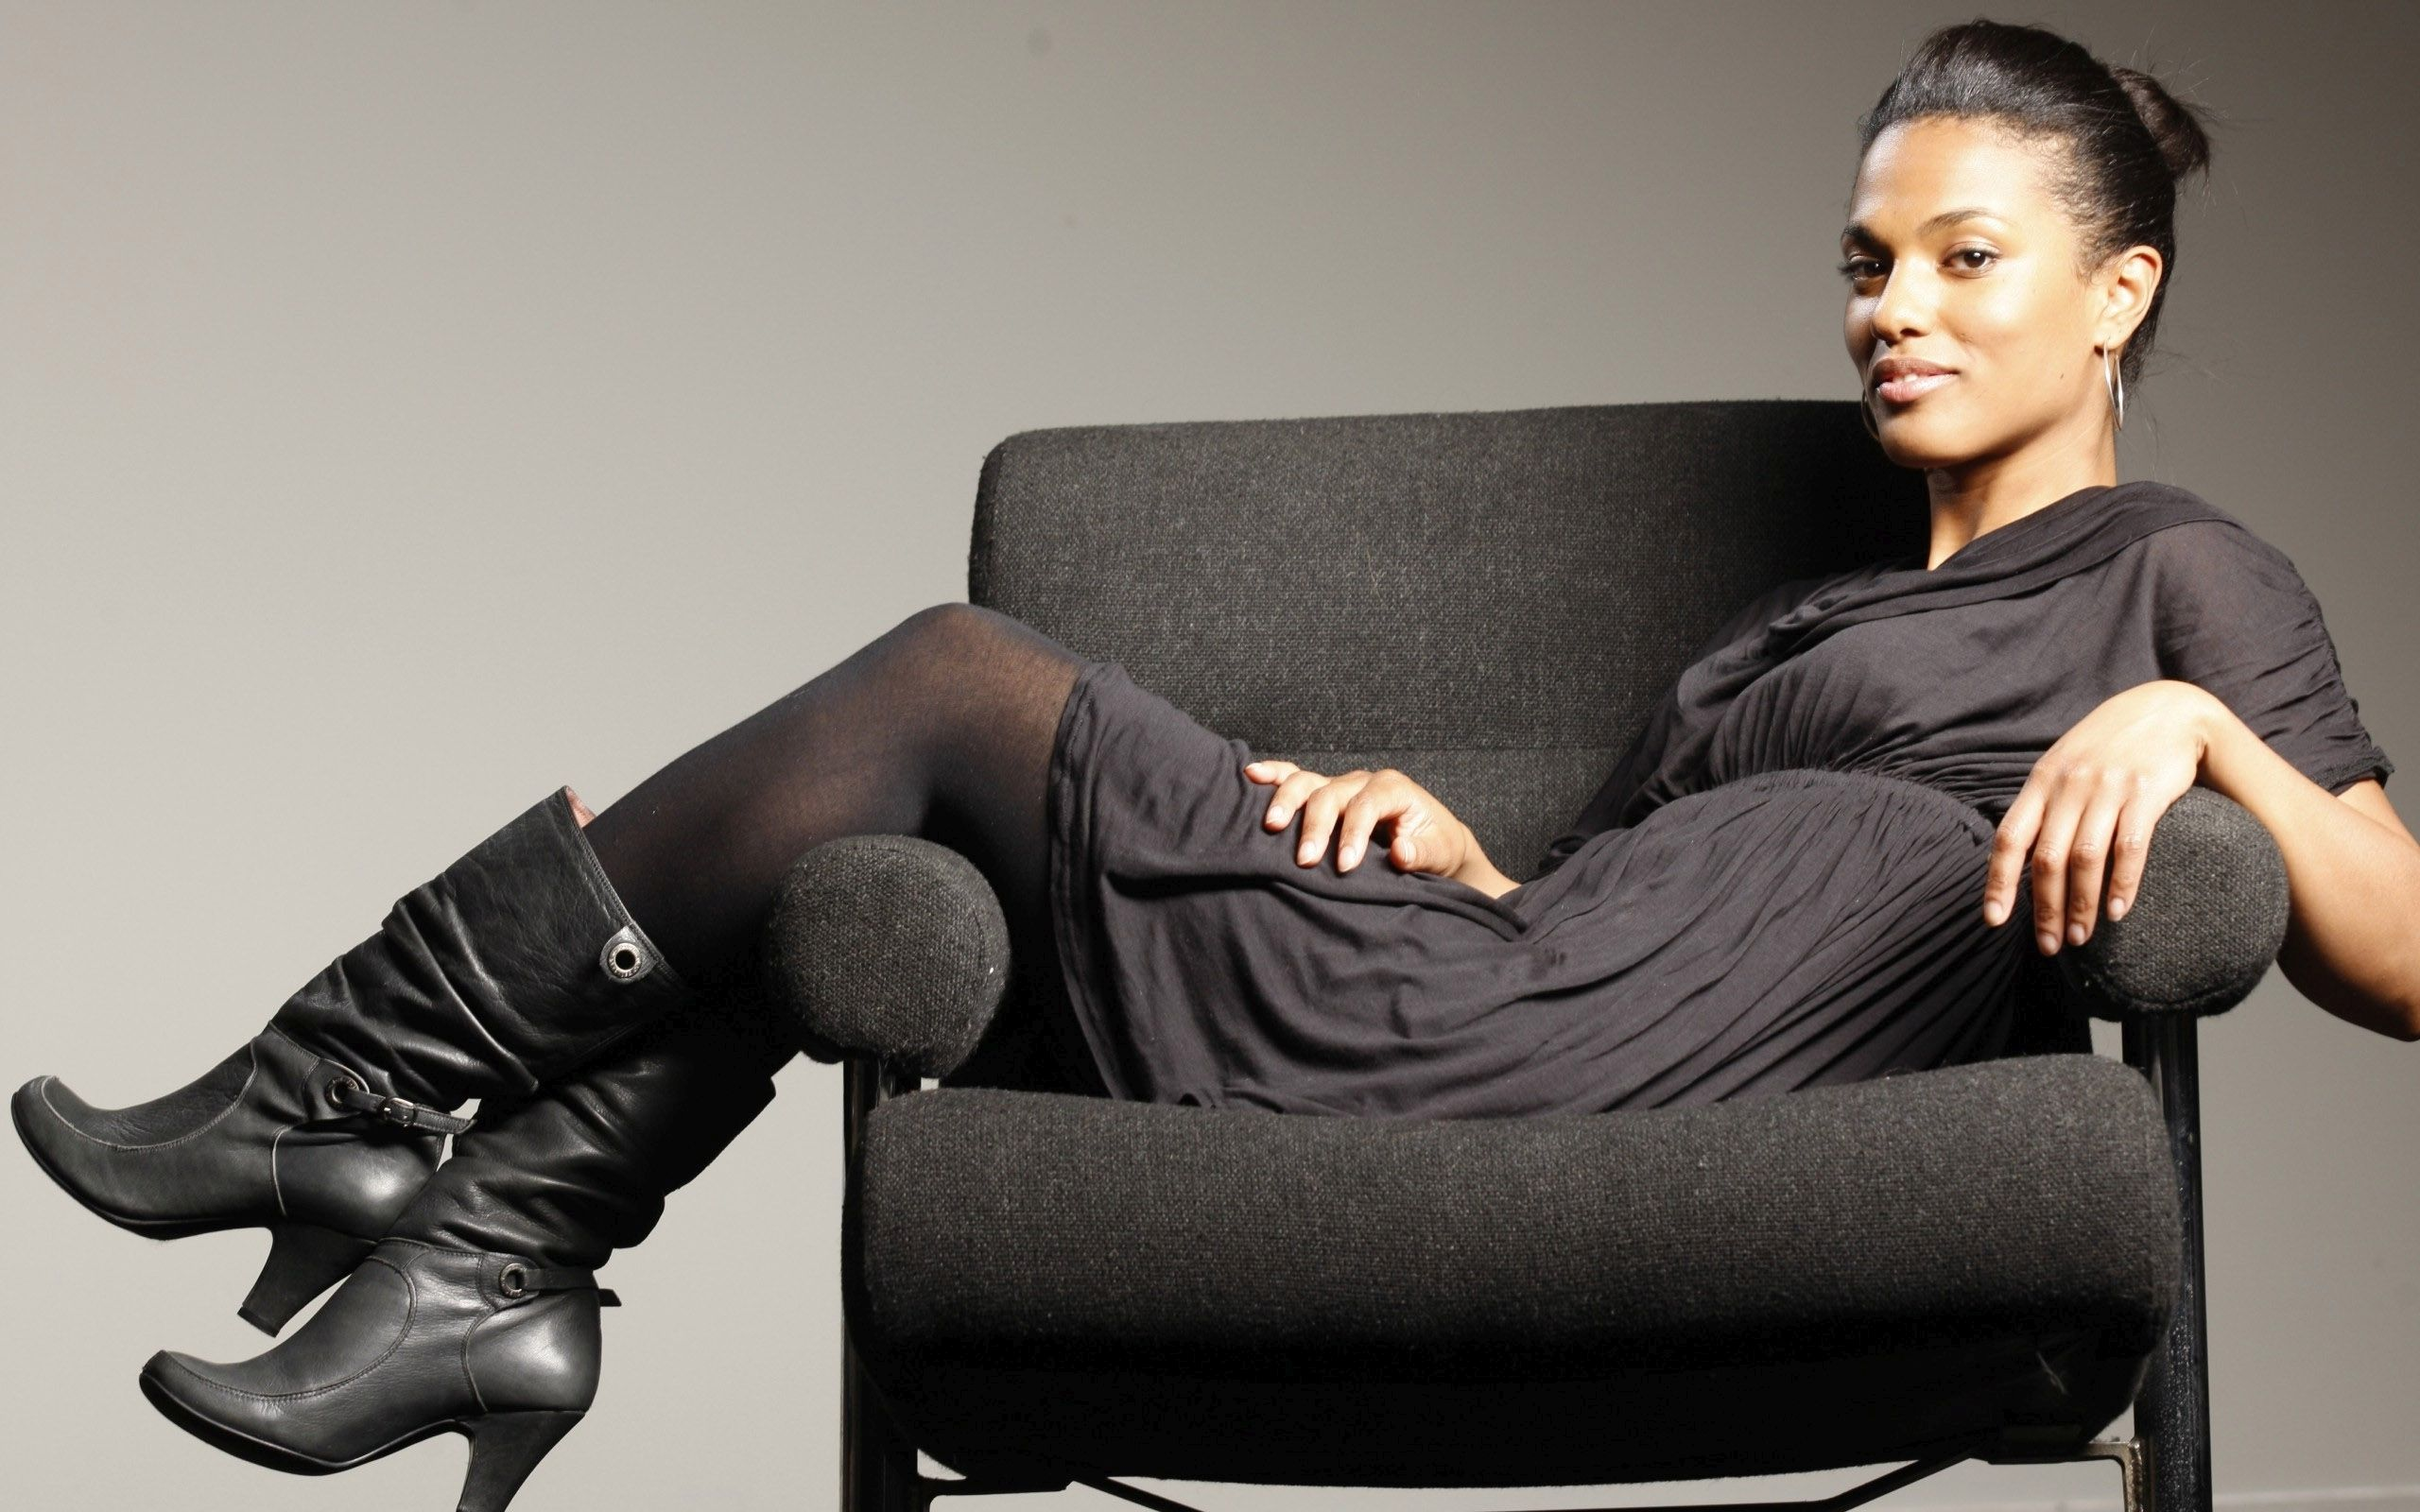 pictures Freema Agyeman (born 1979)